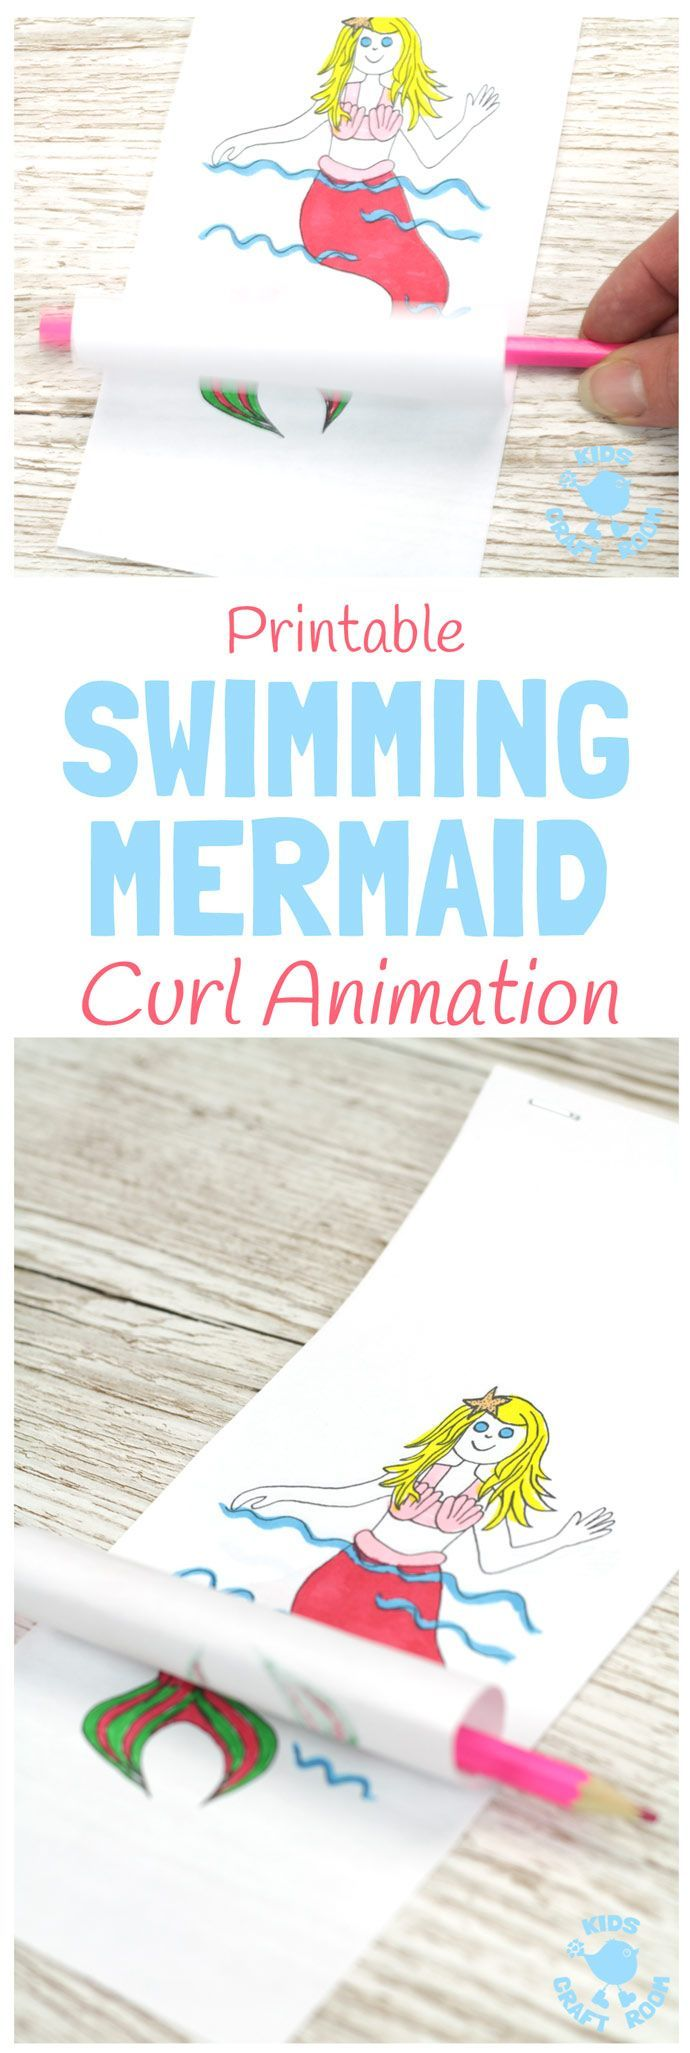 SWIMMING MERMAID CRAFT -PRINTABLE CURL ANIMATION. Easier than flip books kids can colour the mermaid and make her wave her hand and swish her tail in minutes! This interactive Swimming Mermaid activity is lots of fun and introduces kids to the simple curl